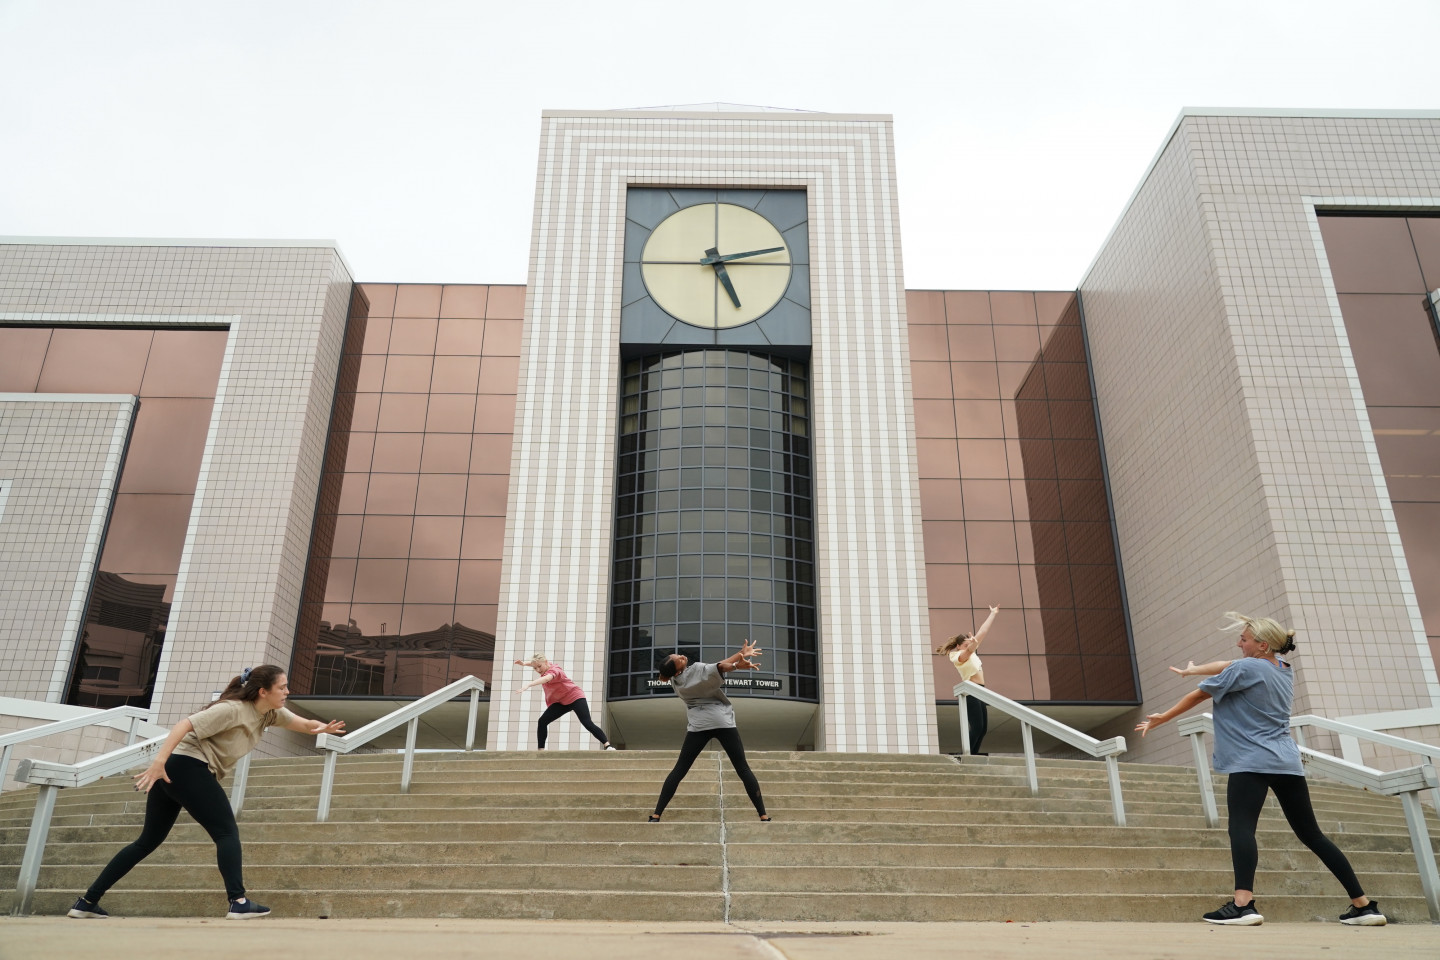 Students dance on steps under a clock tower.